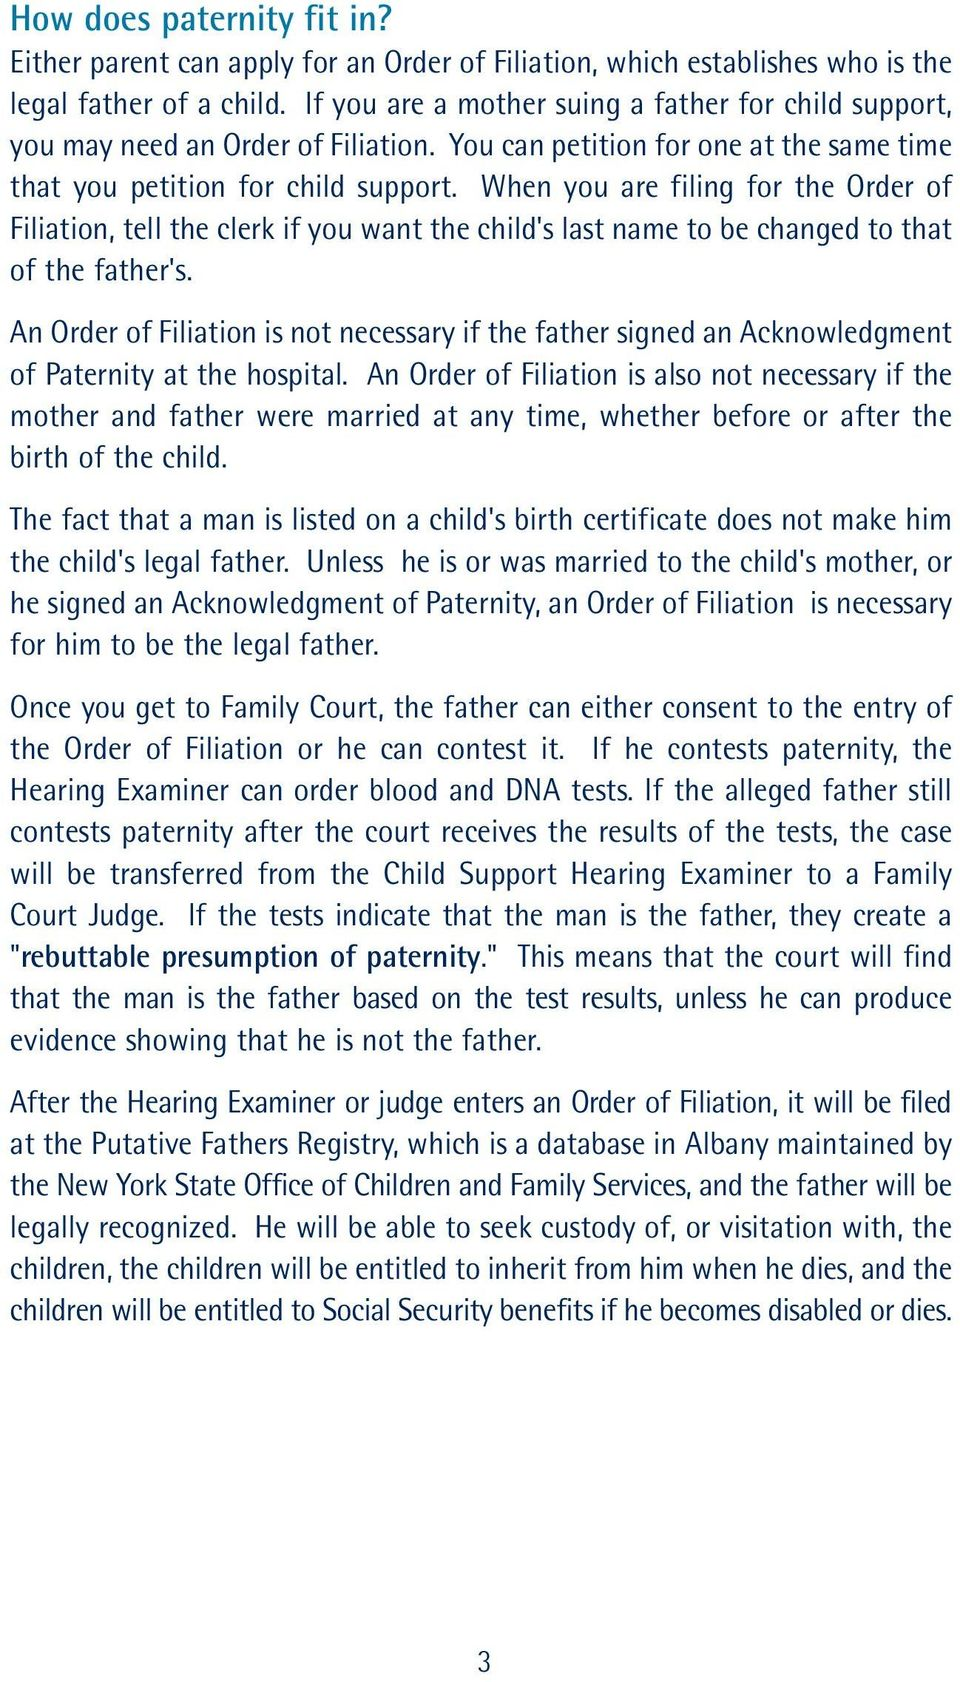 When you are filing for the Order of Filiation, tell the clerk if you want the child's last name to be changed to that of the father's.